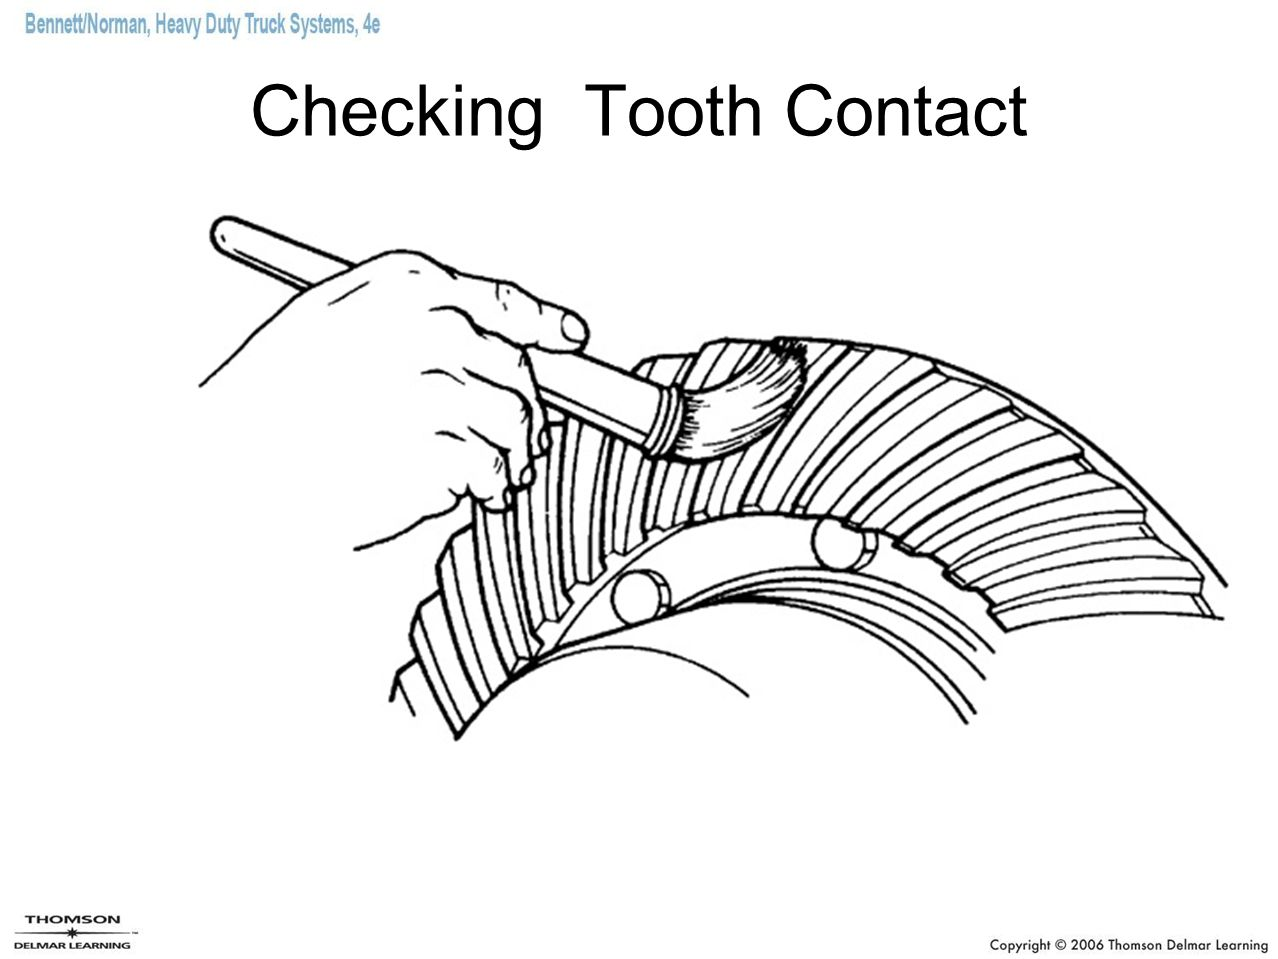 Checking Tooth Contact